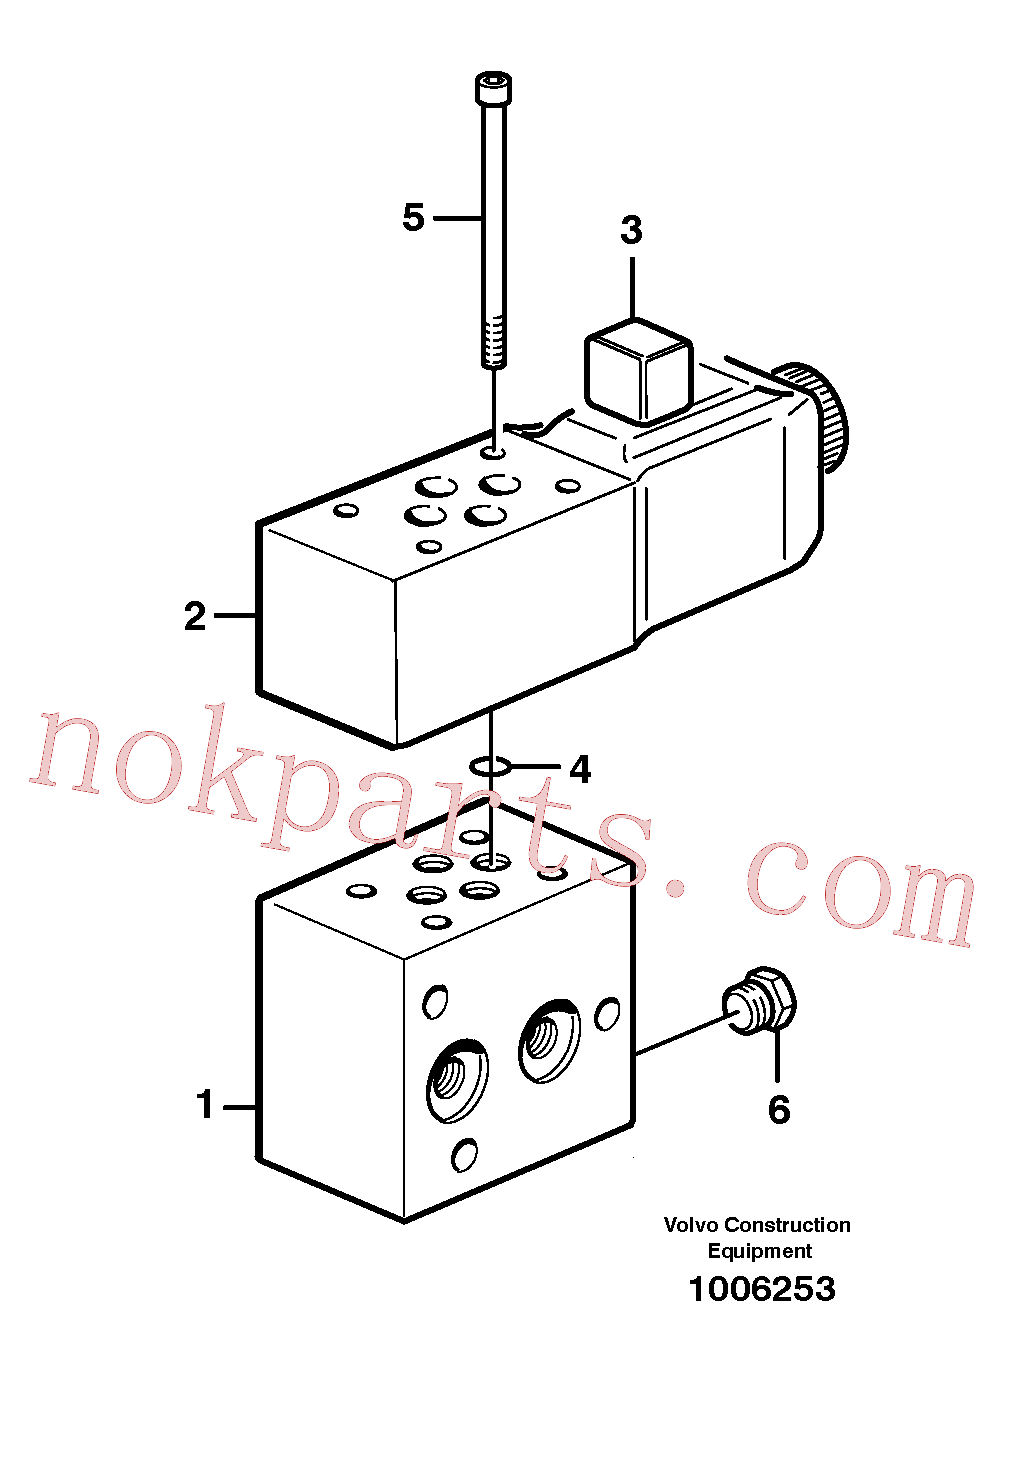 VOE914390 for Volvo Connecting block(1006253 assembly)